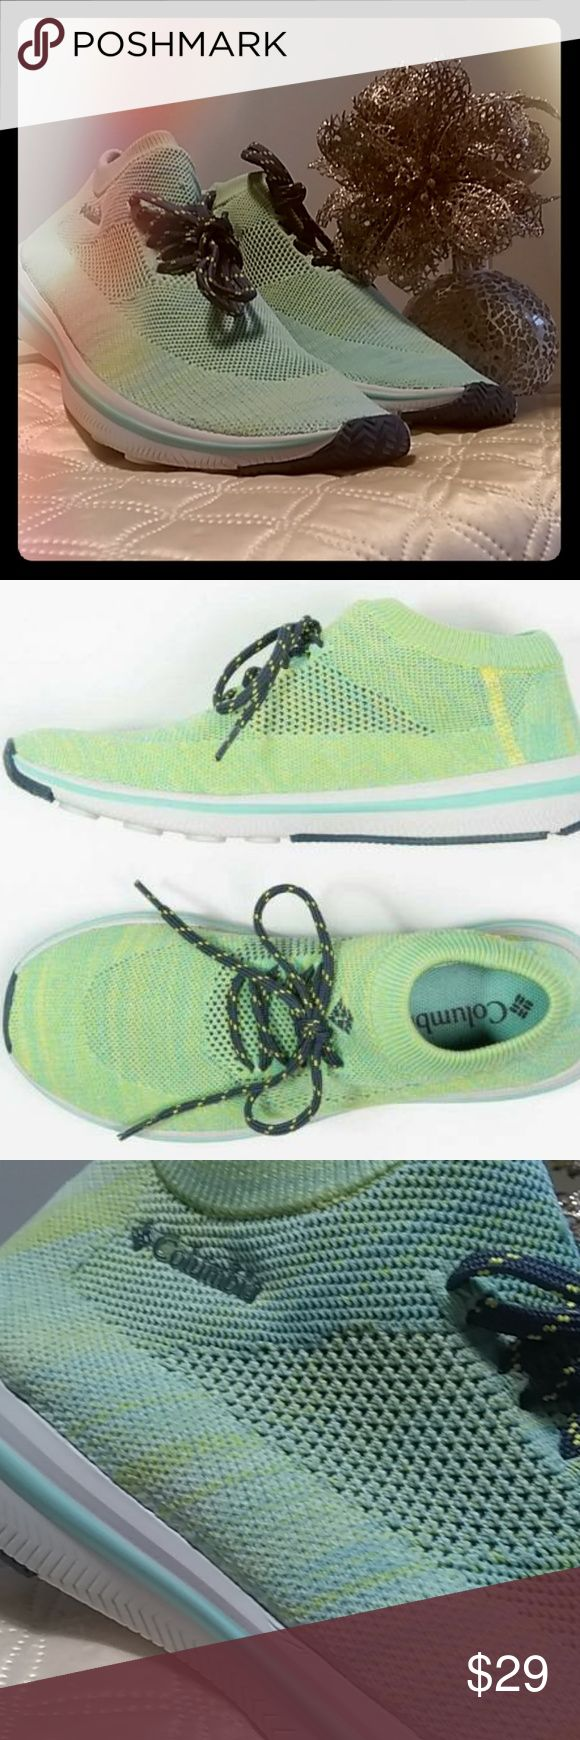 🏃Columbia Chimera running shoes Columbia Chimera Running Shoes Seamless knit …